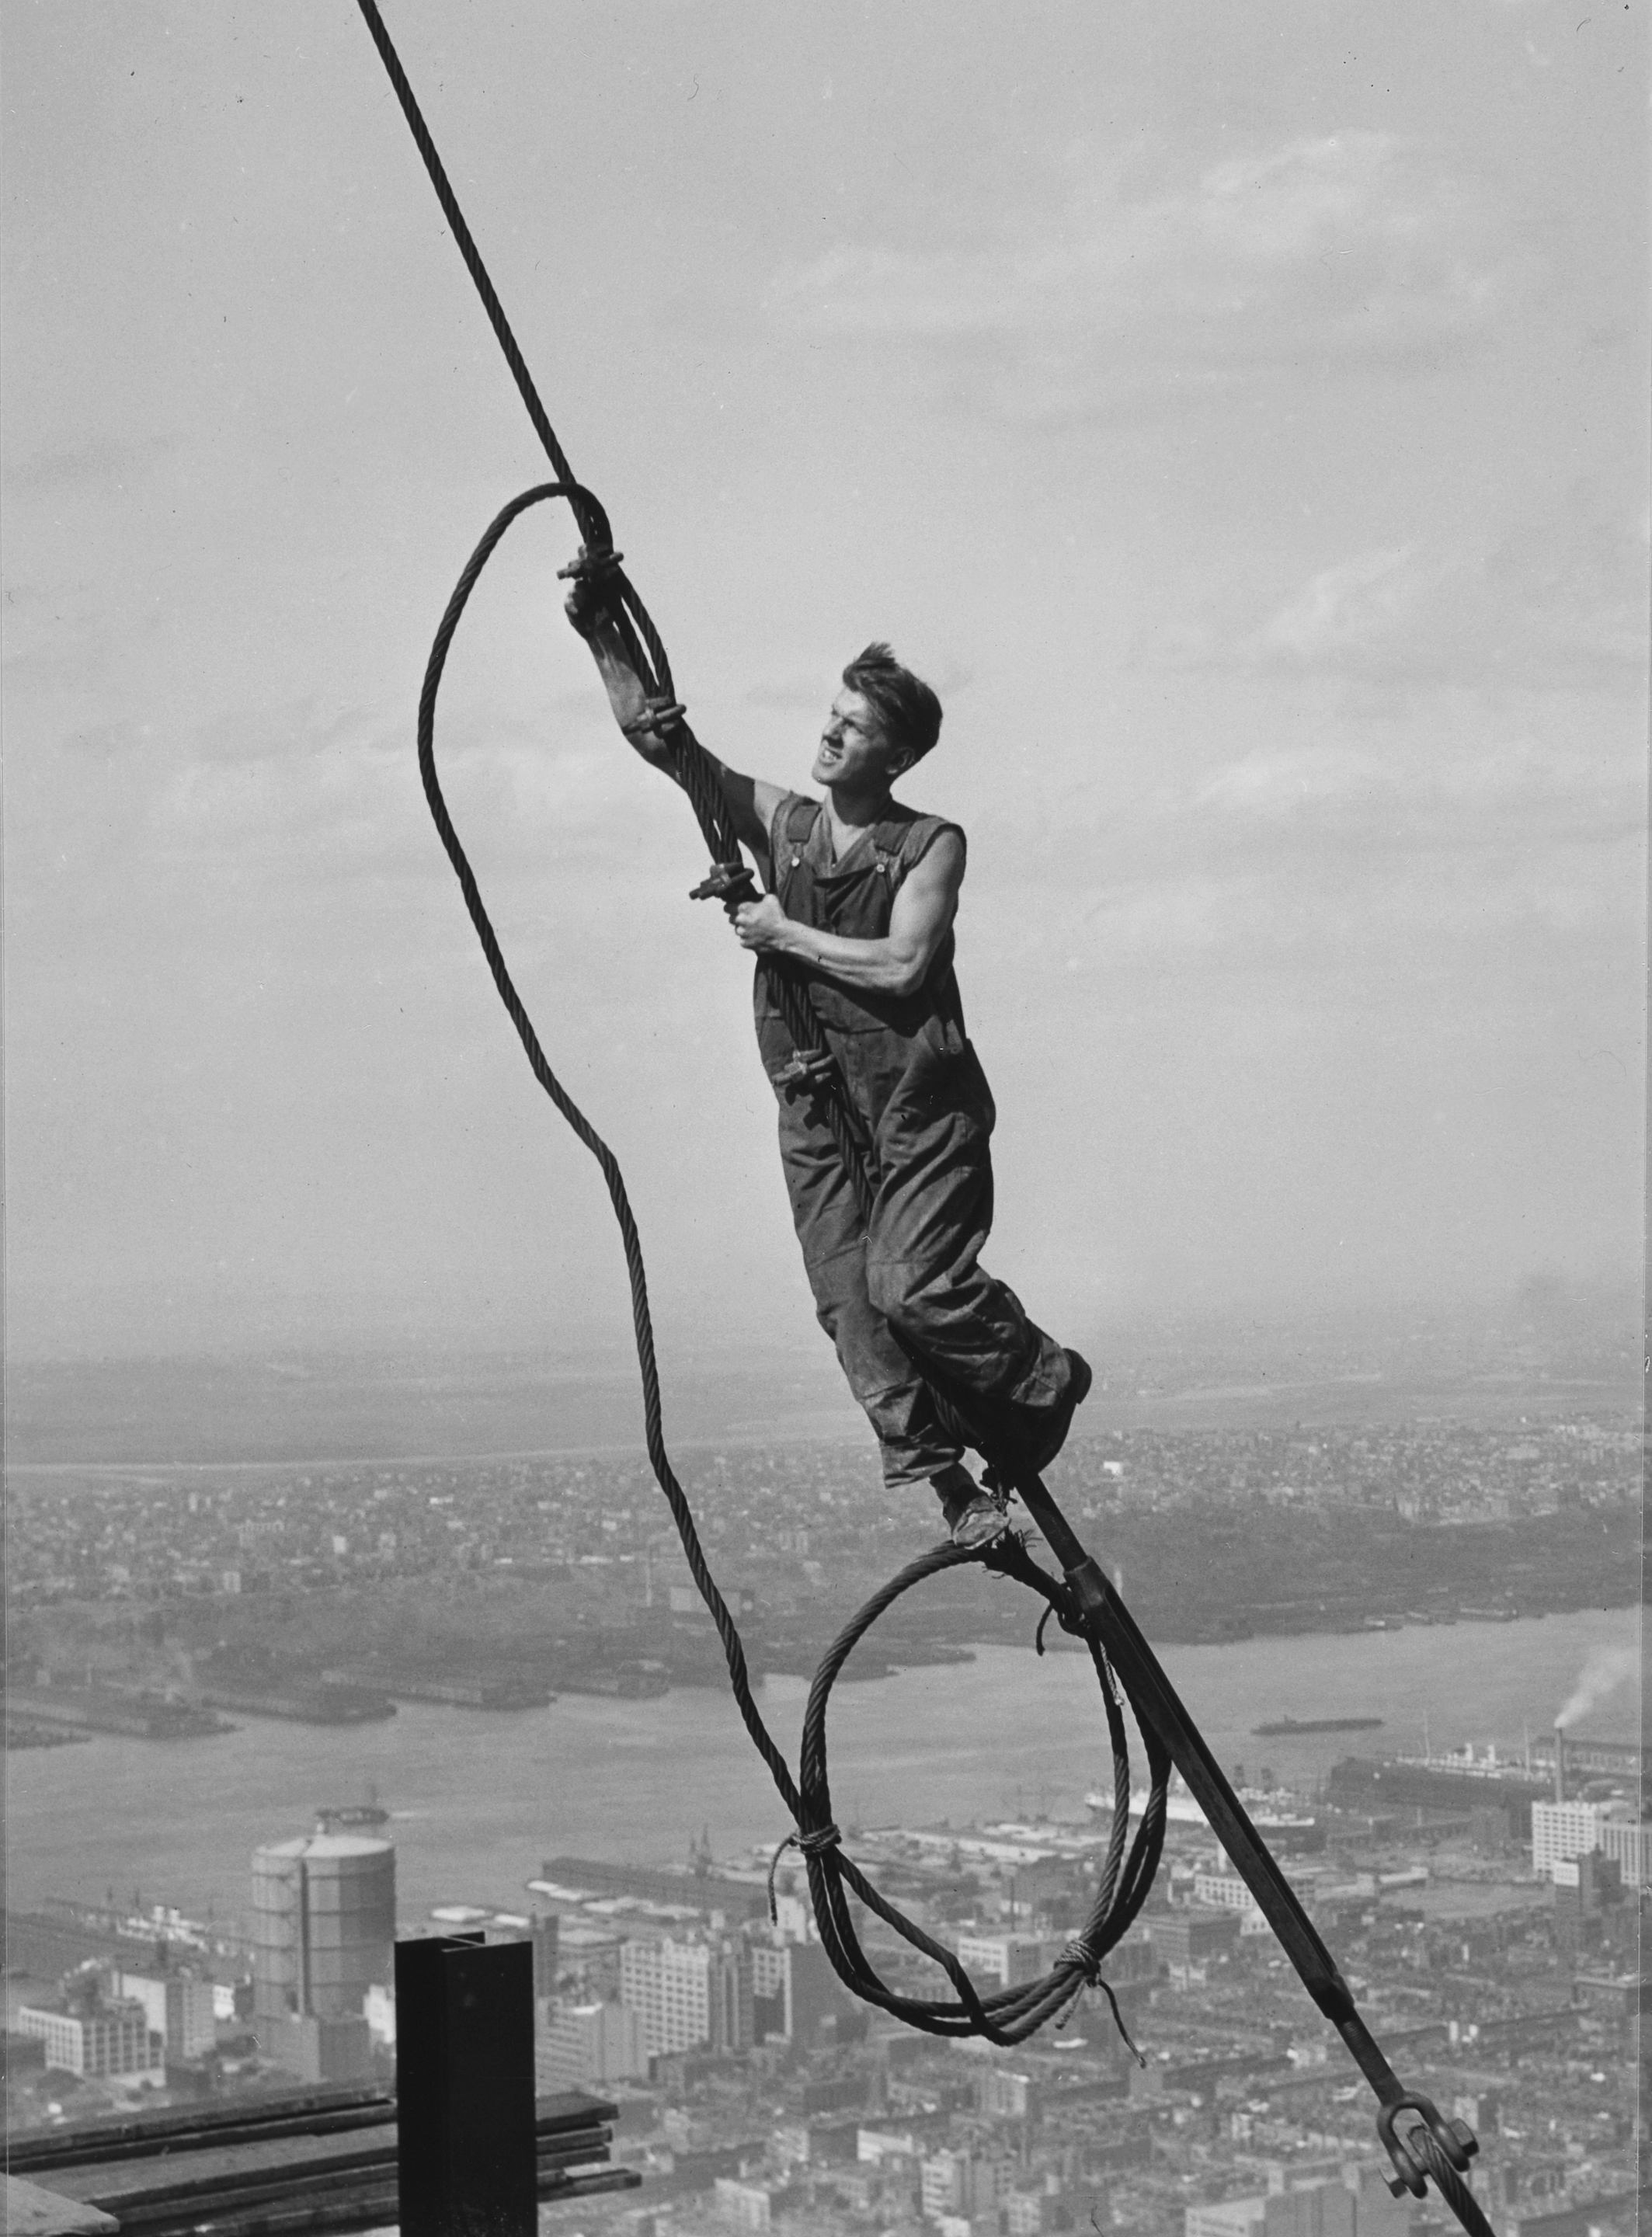 Lewis University Email >> New Exhibition Features Photographs by Lewis Hine of Empire State Building's Construction, at ...